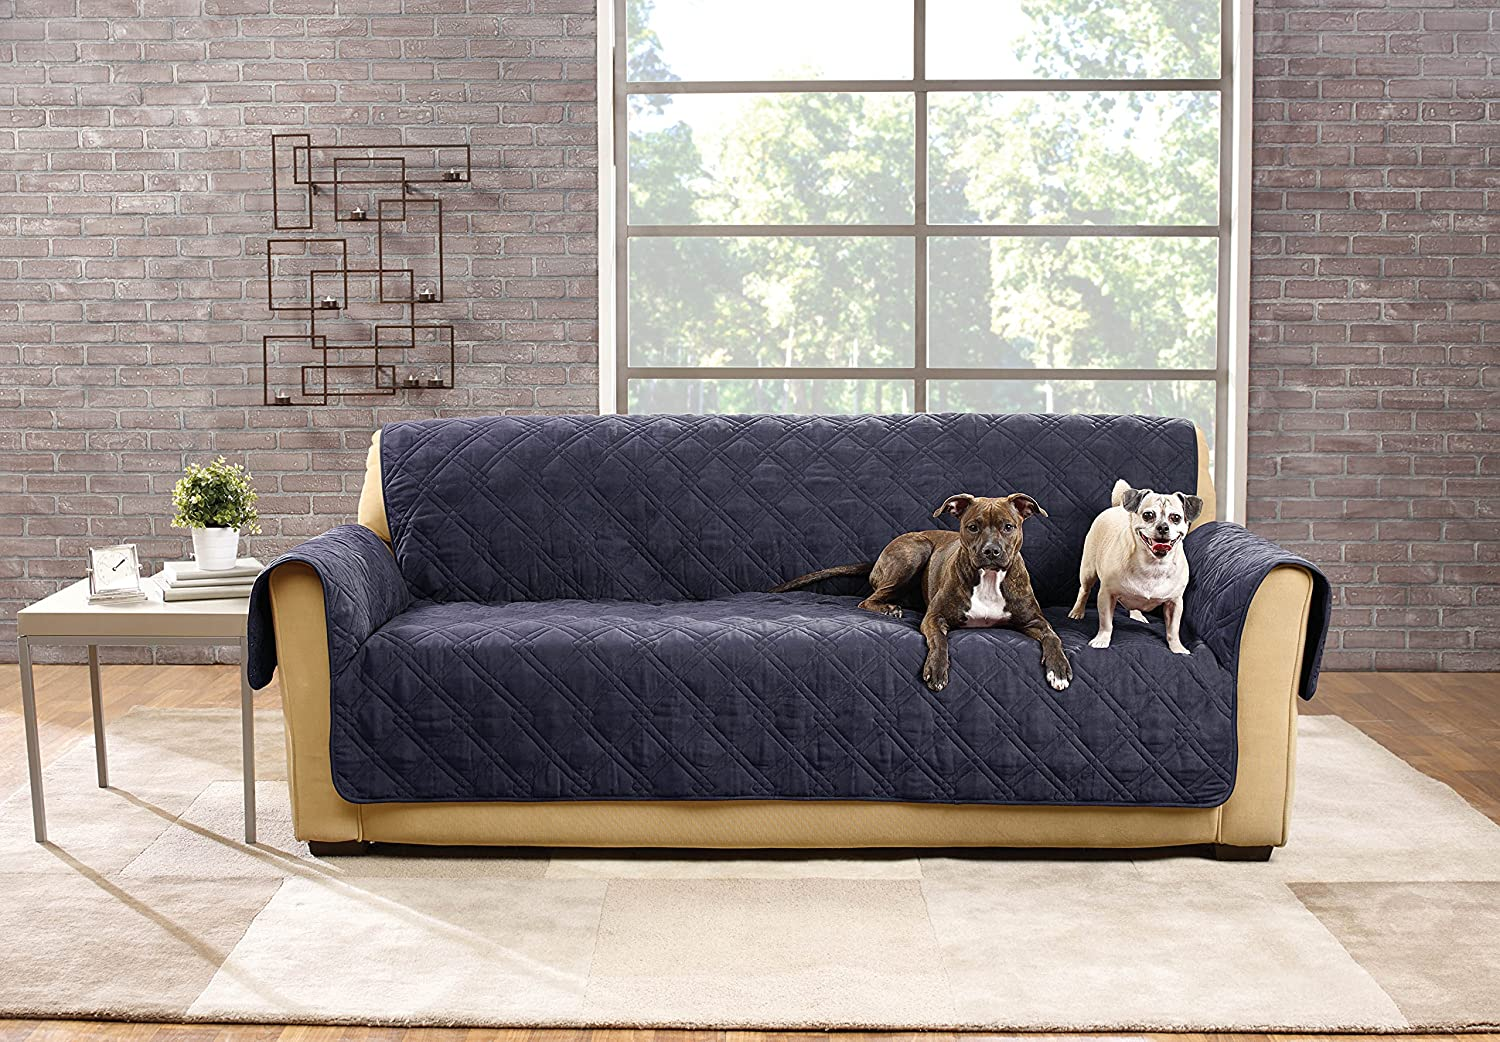 amazoncom sure fit sf44832 deluxe non skid waterproof pet sofa furniture cover storm blue home u0026 kitchen